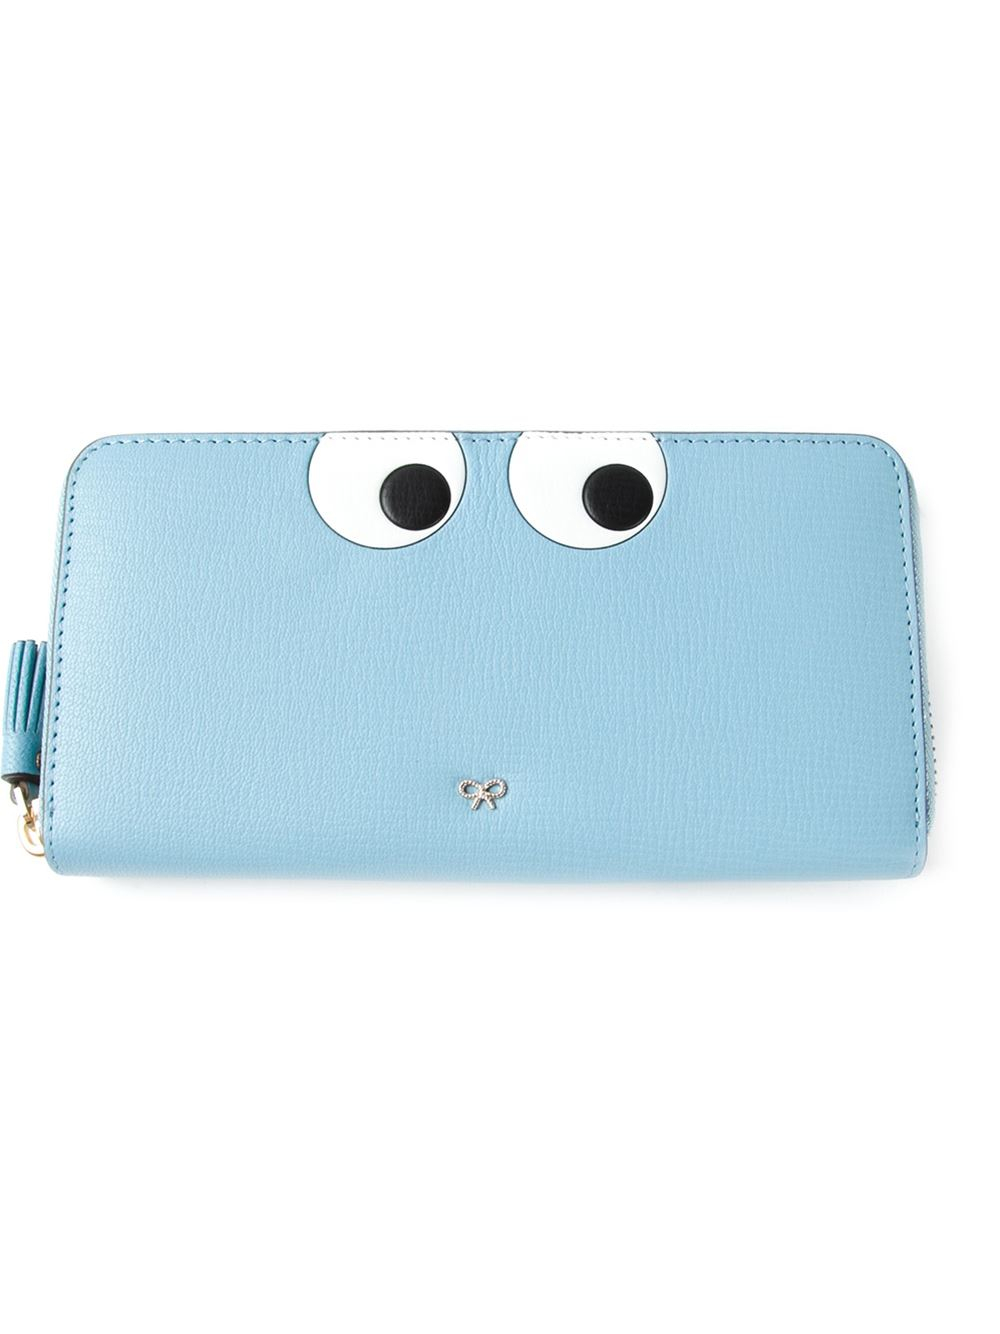 small silver leather Eyes zip around wallet - Grey Anya Hindmarch A09m6eFzv0